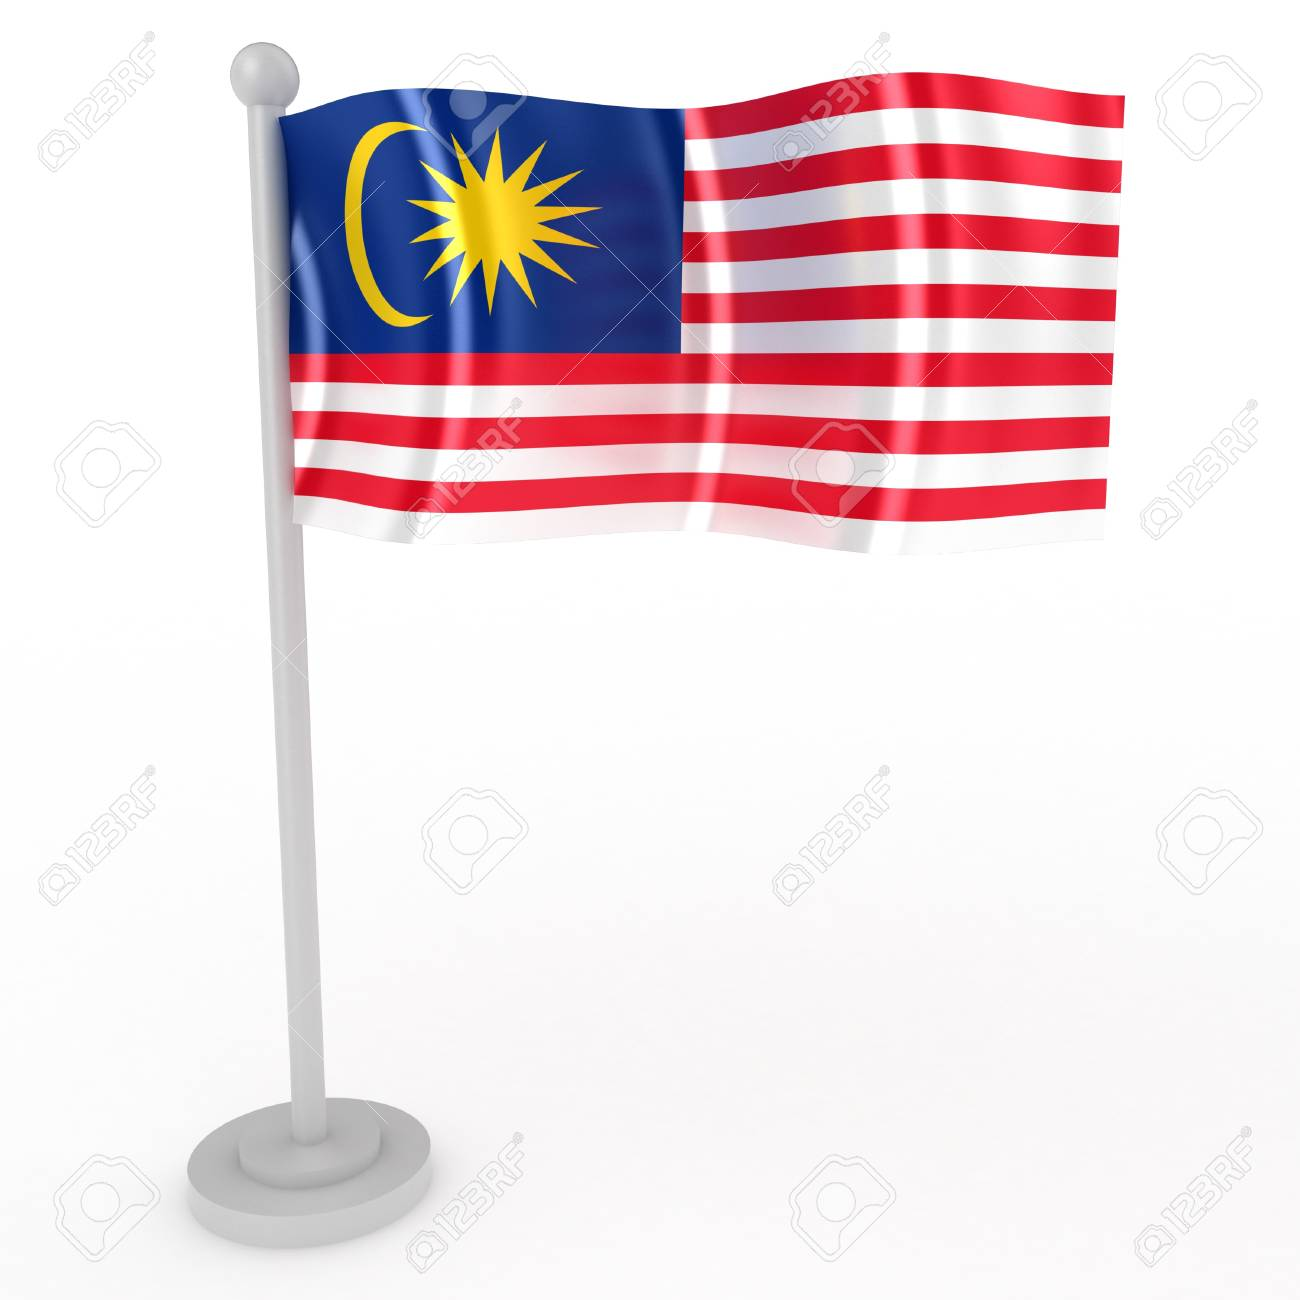 Illustration of a flag of Malaysia on a white background Stock Photo - 8853487